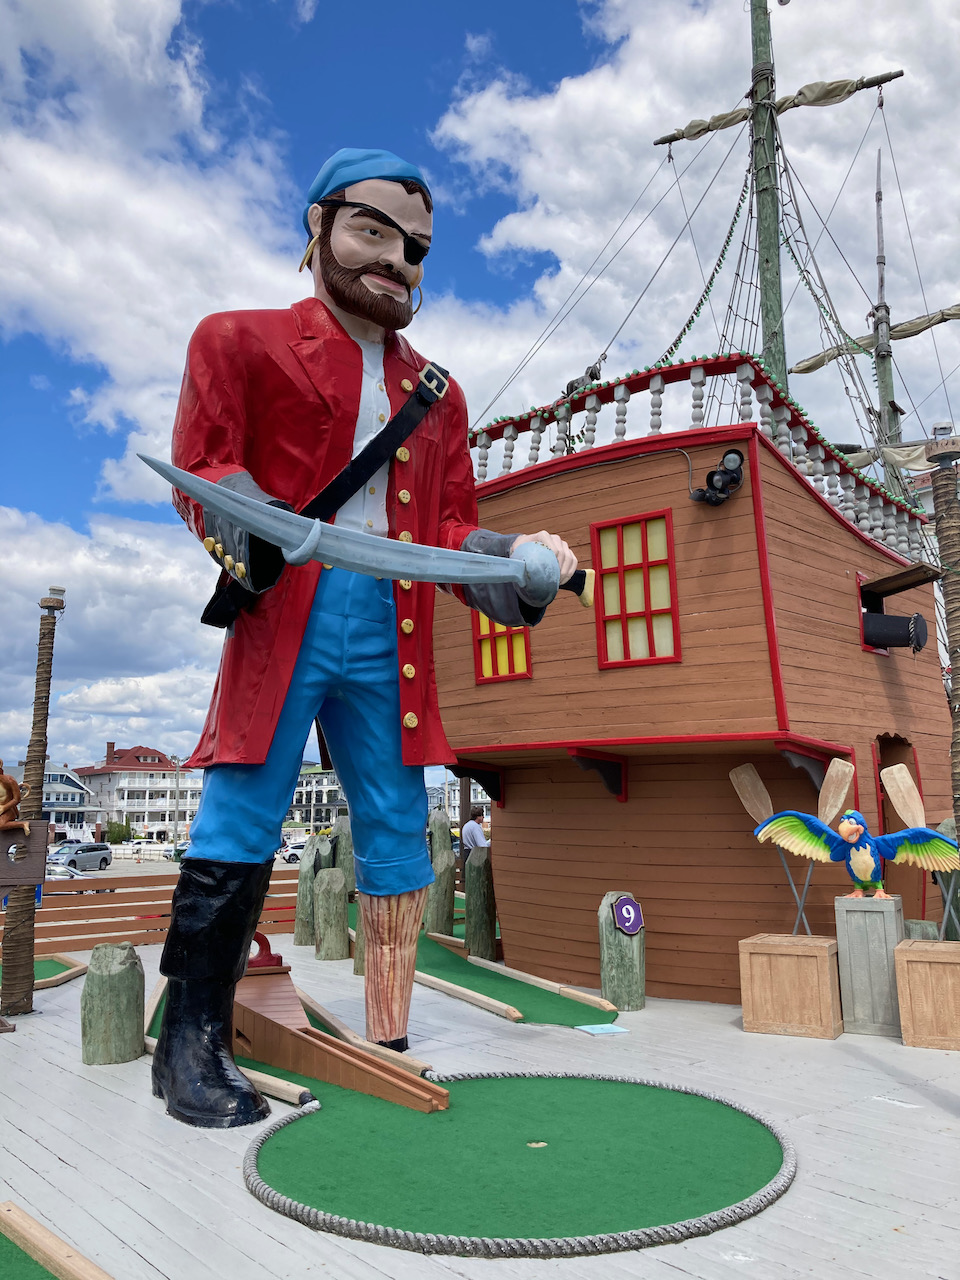 Statue dressed as pirate, standing above miniature gold course hole. A pirate ship is in the background.